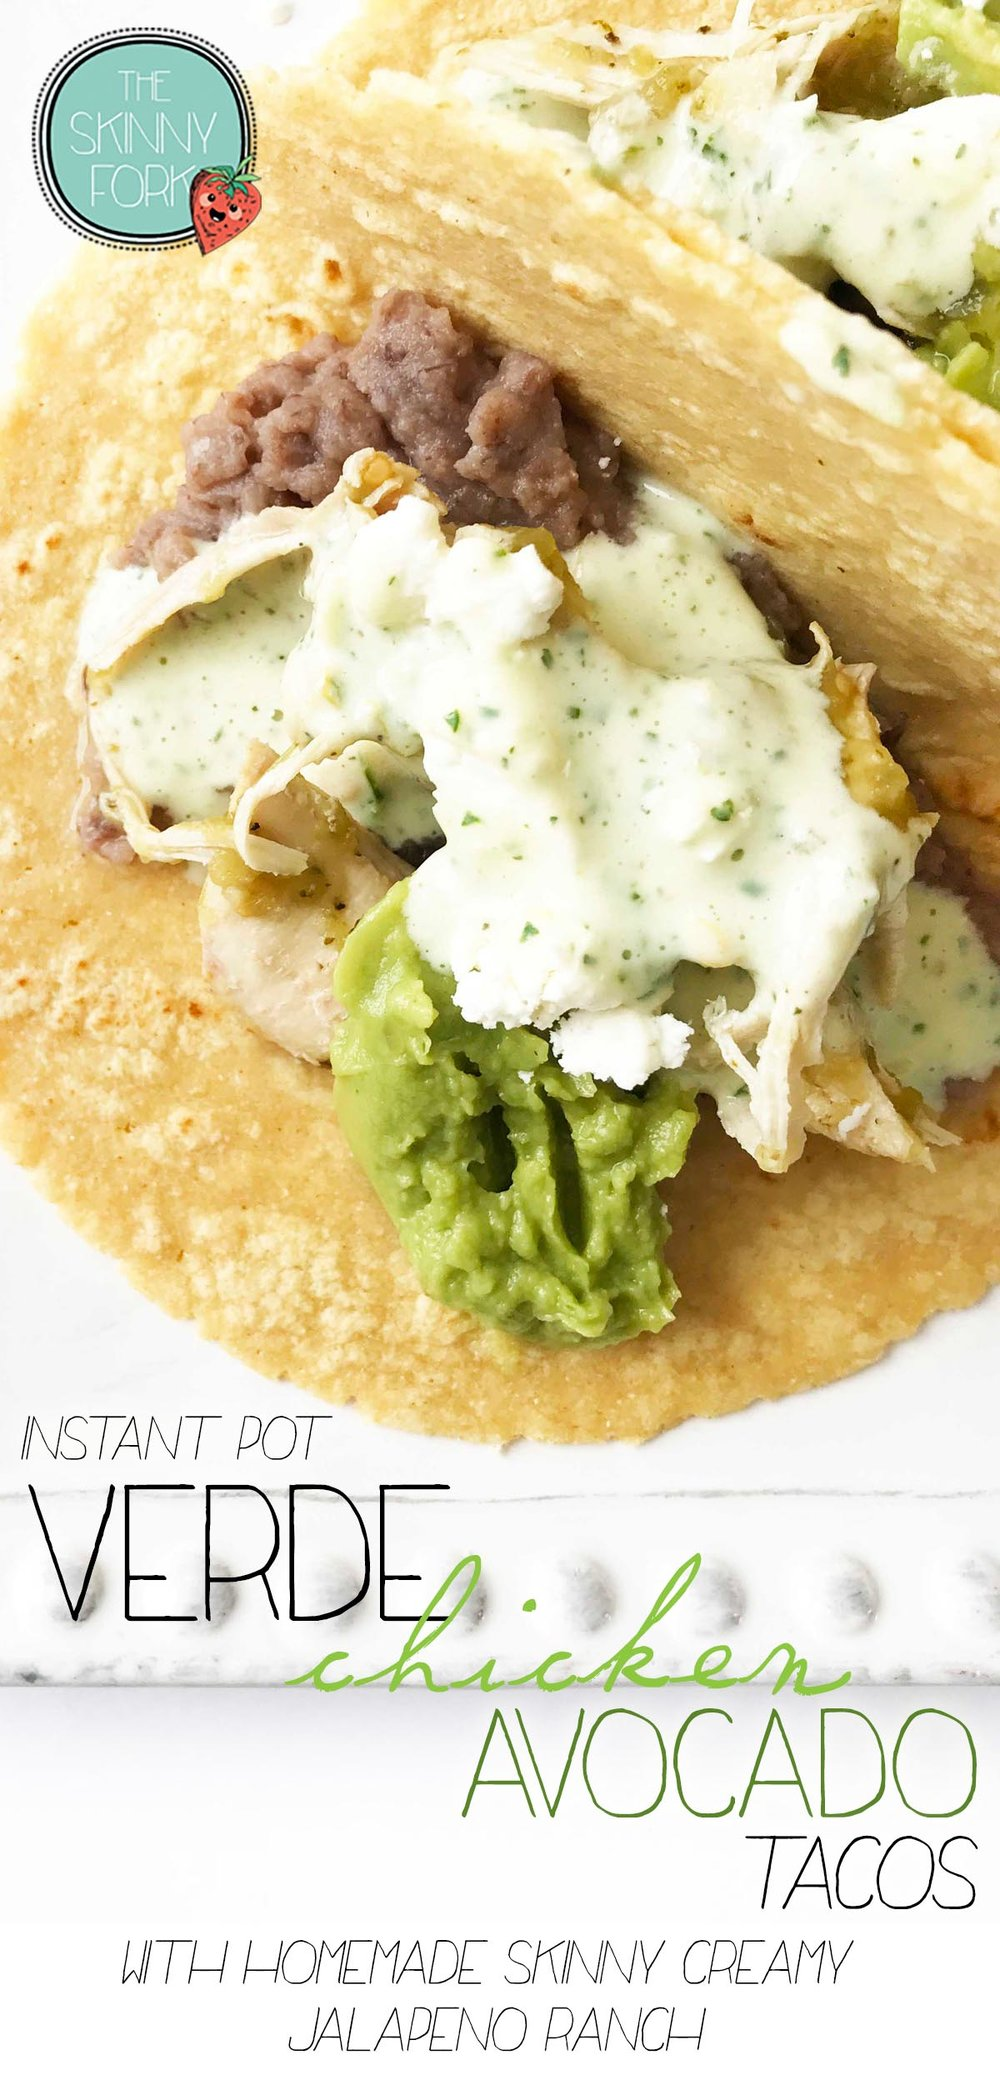 Instant Pot Verde Chicken Tacos (With Creamy Jalapeño)